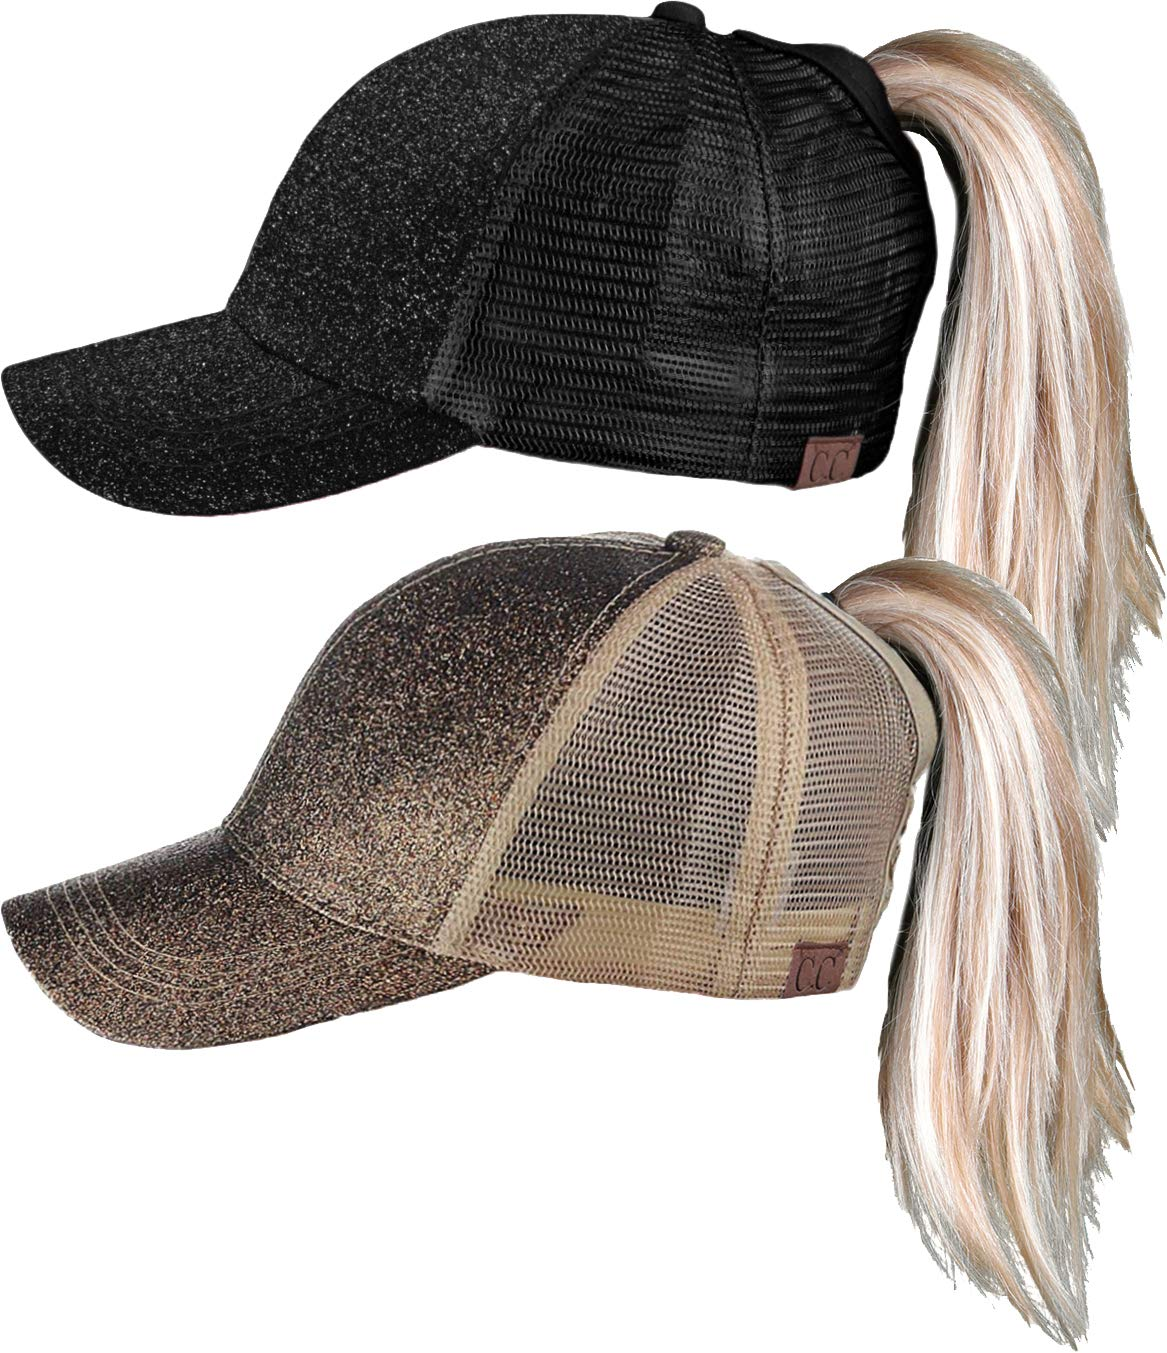 H-209-2-0607 Glitter Ponycap Trucker Hat 2-Pack: Black and Macciato